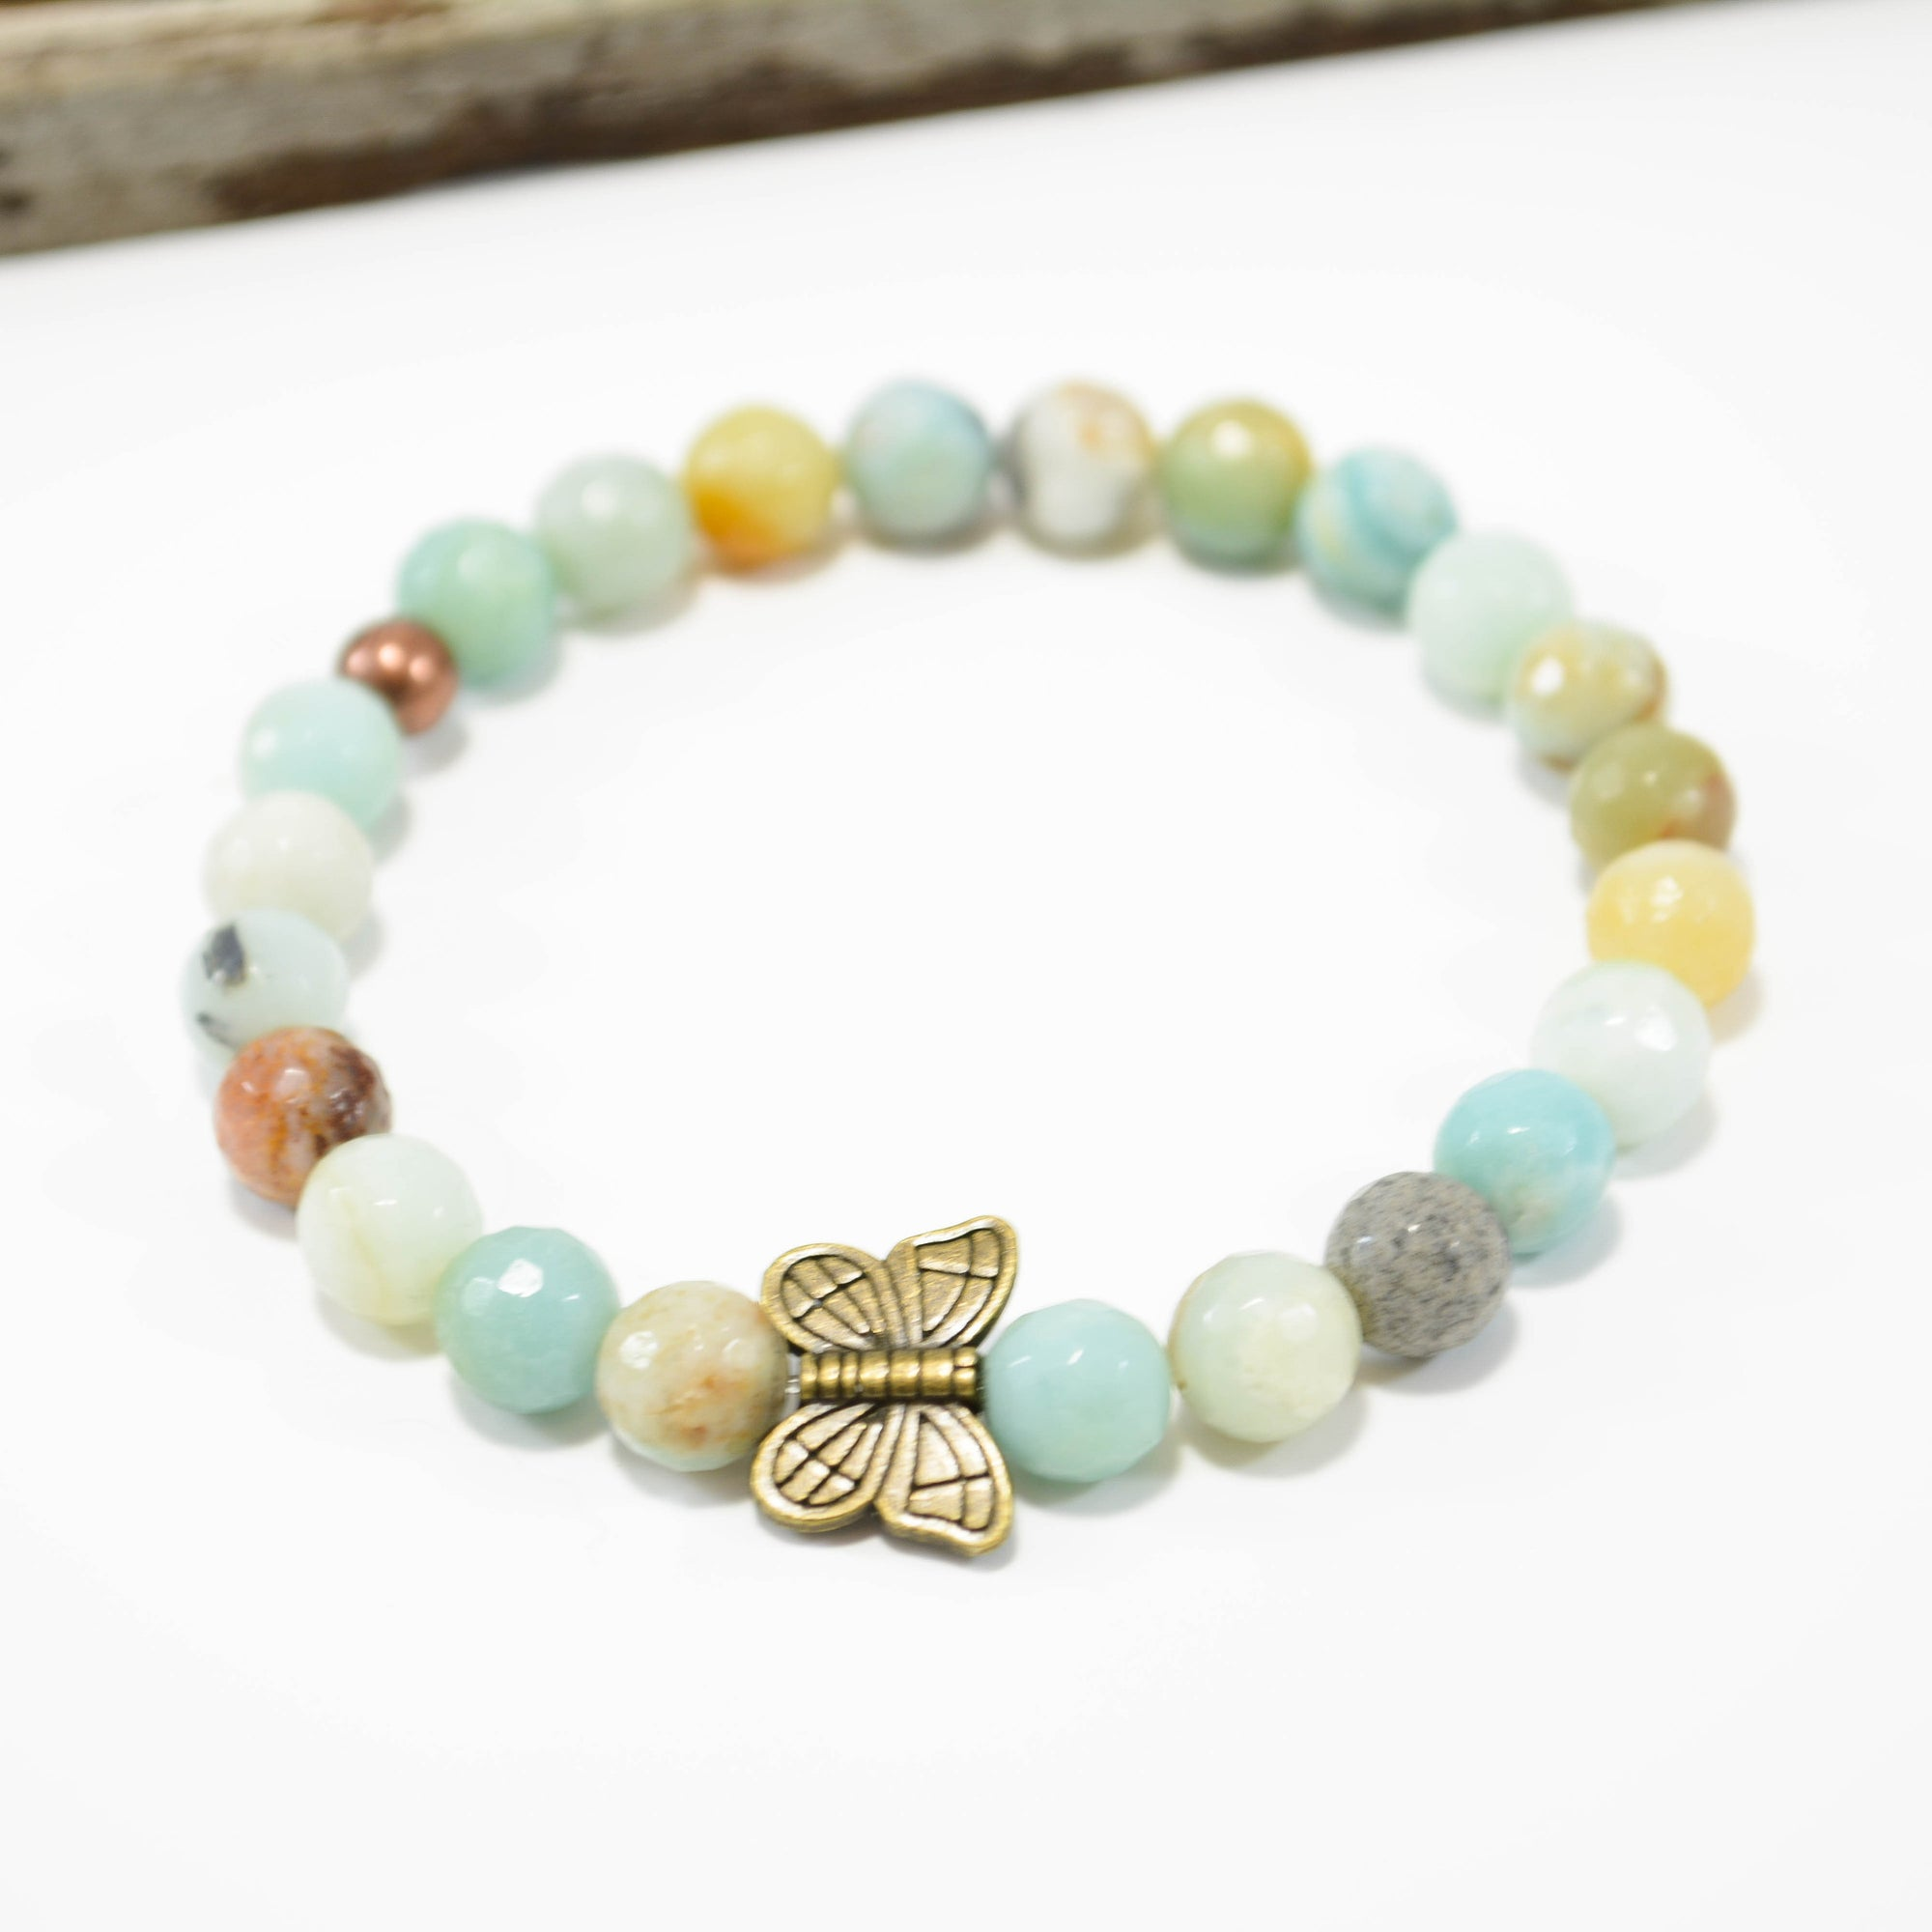 Calming Collection - Soothing Energy Bracelet - Bronze Butterfly